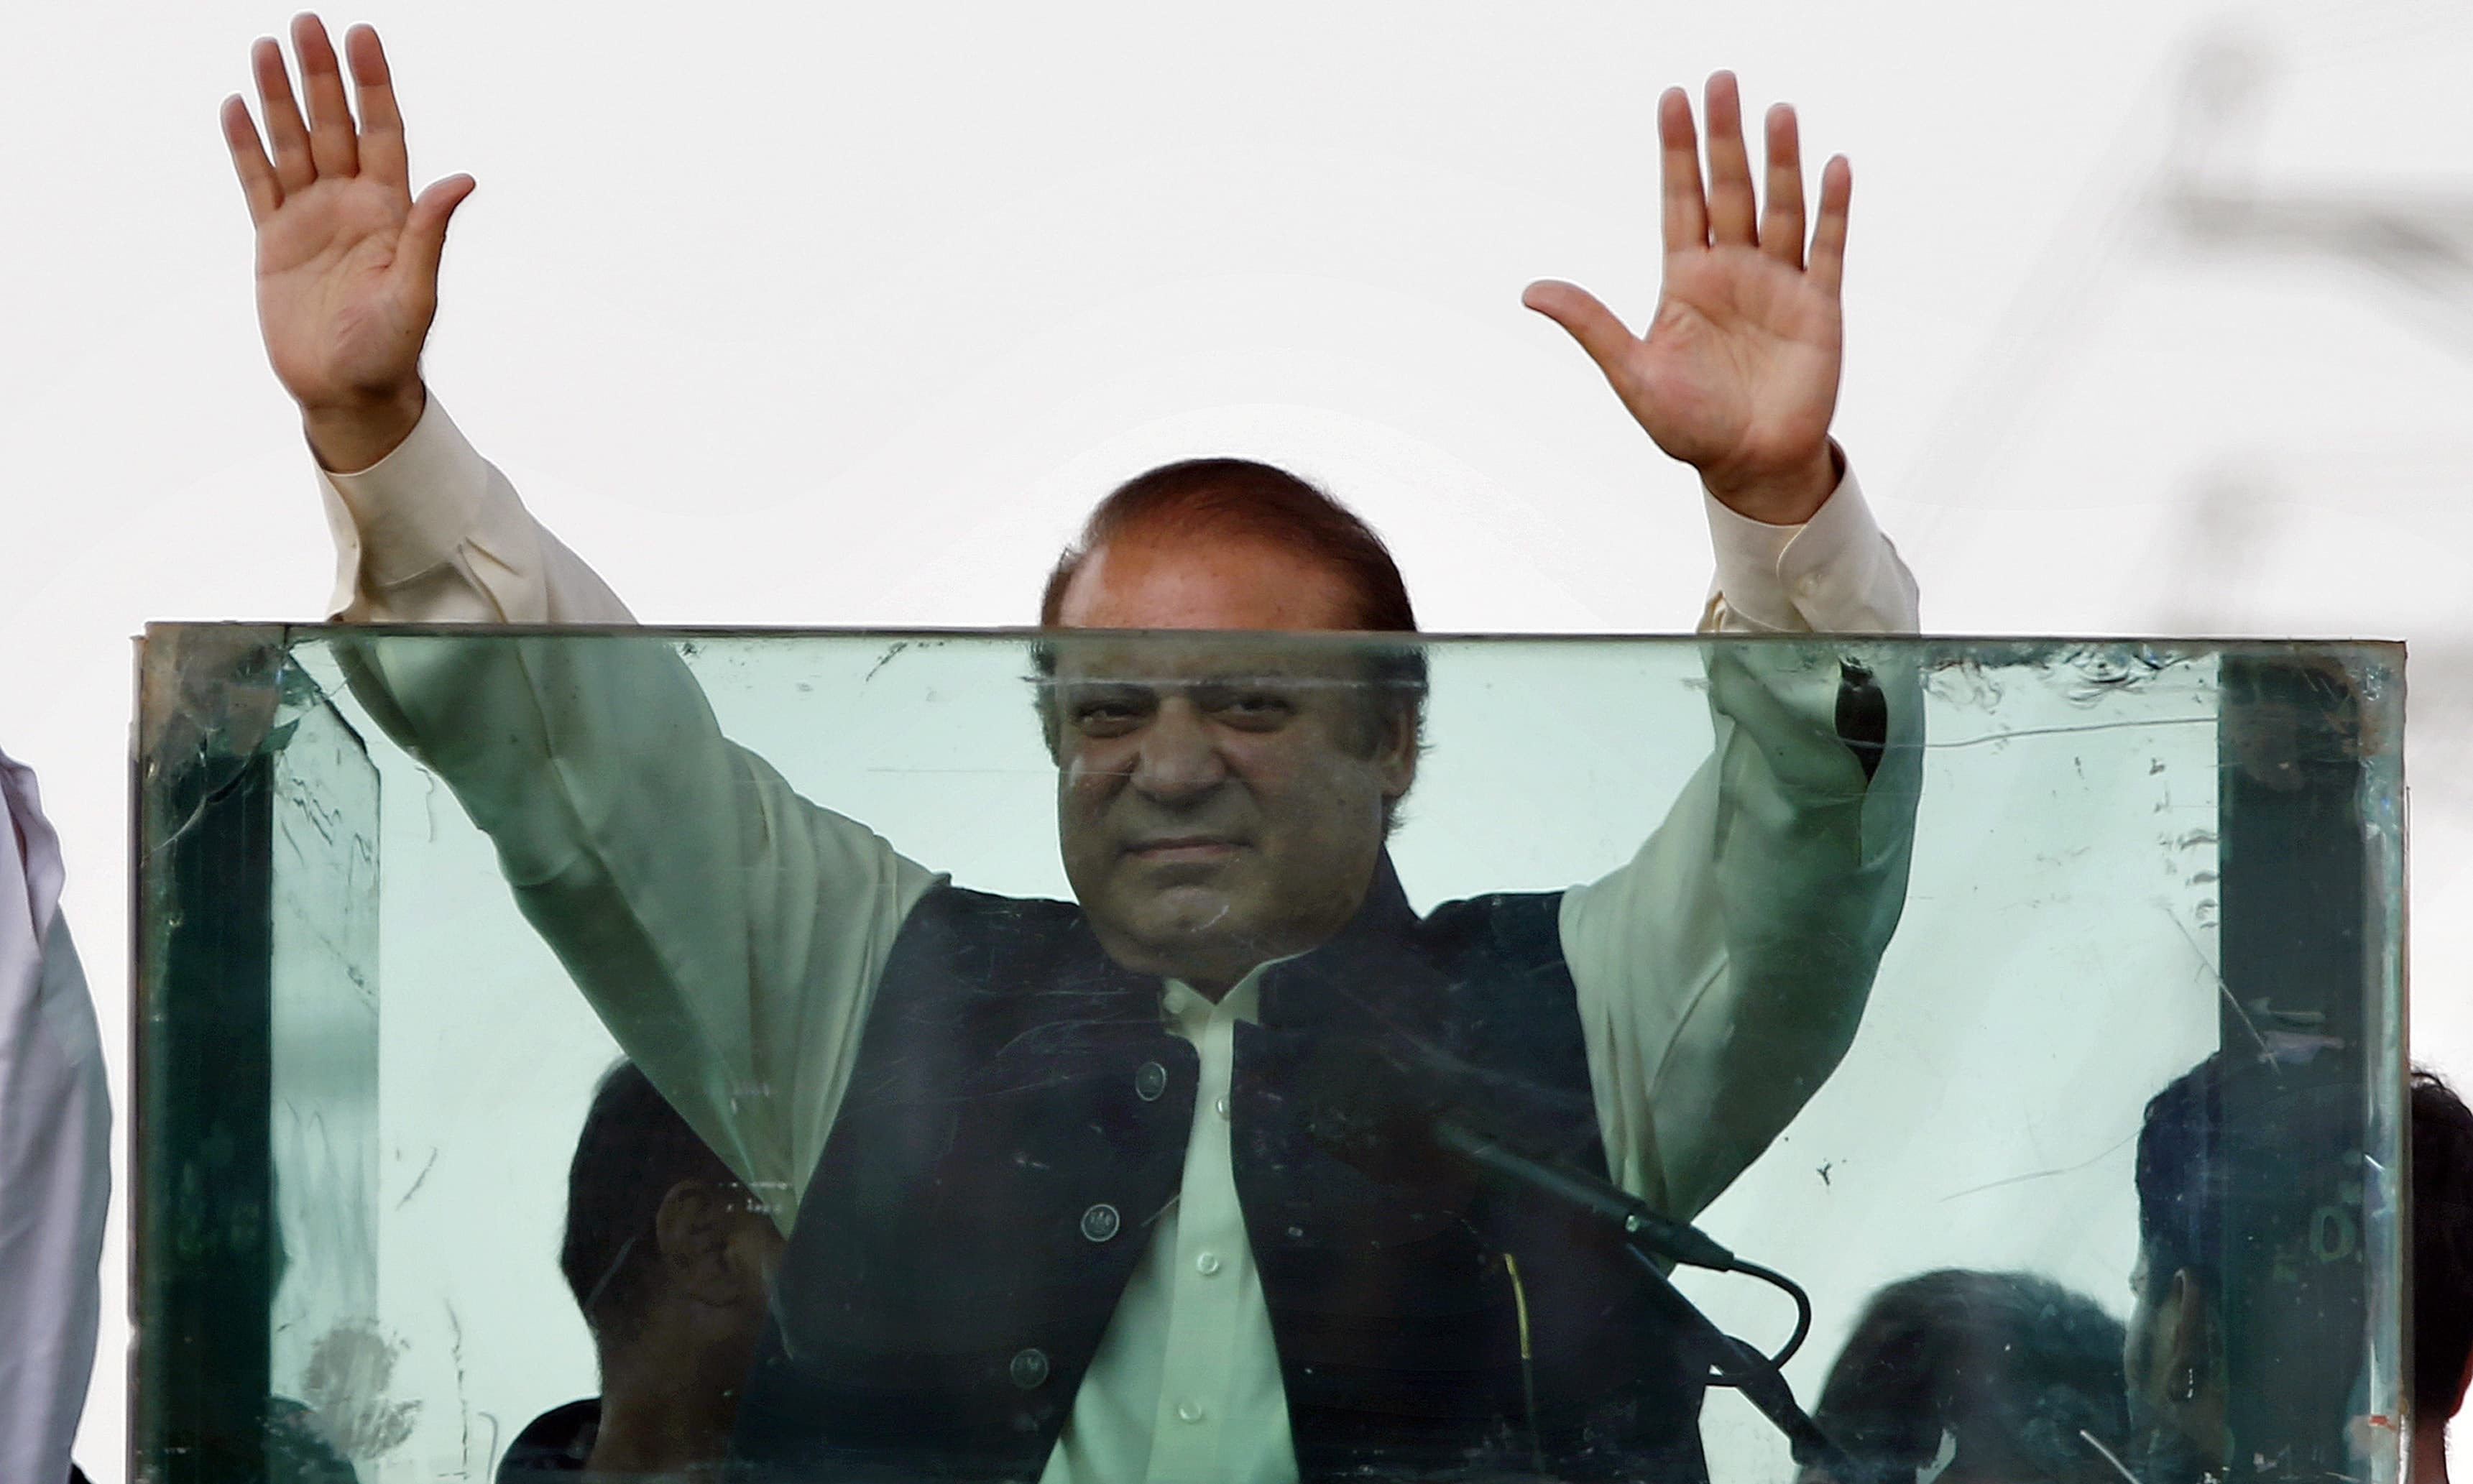 Nawaz Sharif raises his hands to respond to his supporters during a rally in Muridke on August 12.— AP/File